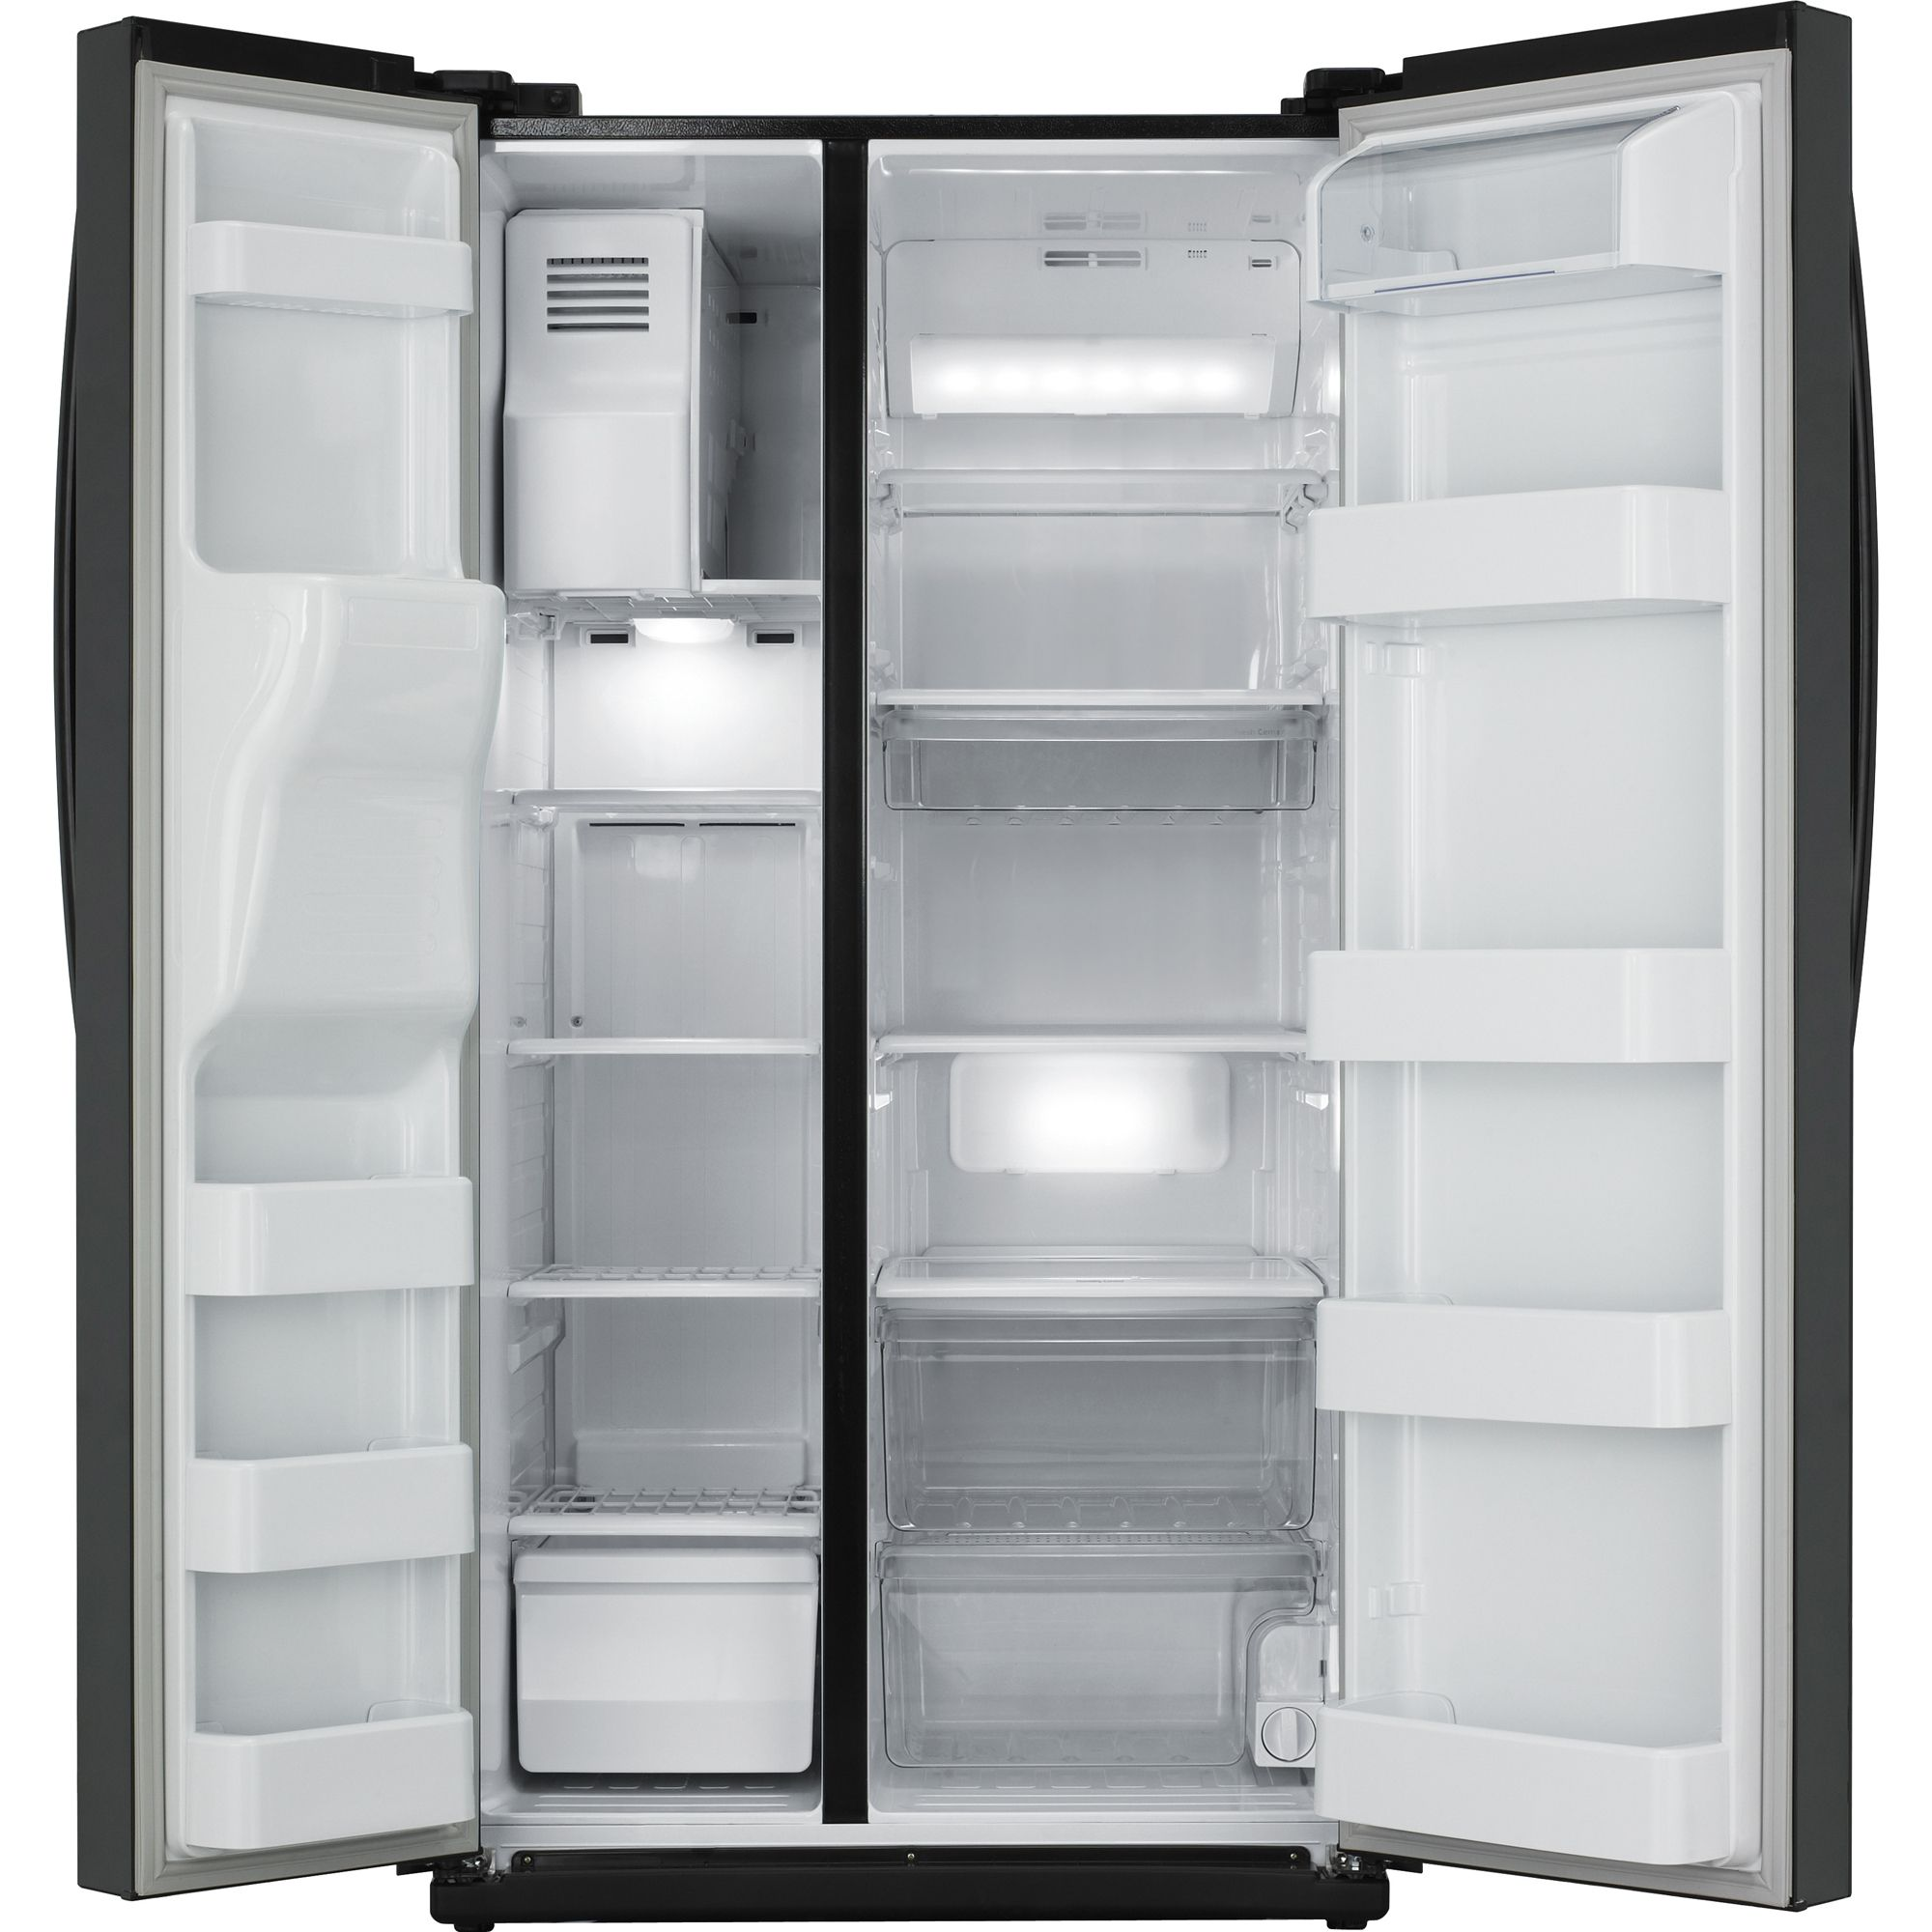 Samsung 26.0 cu. ft. Side-By-Side Refrigerator  Black